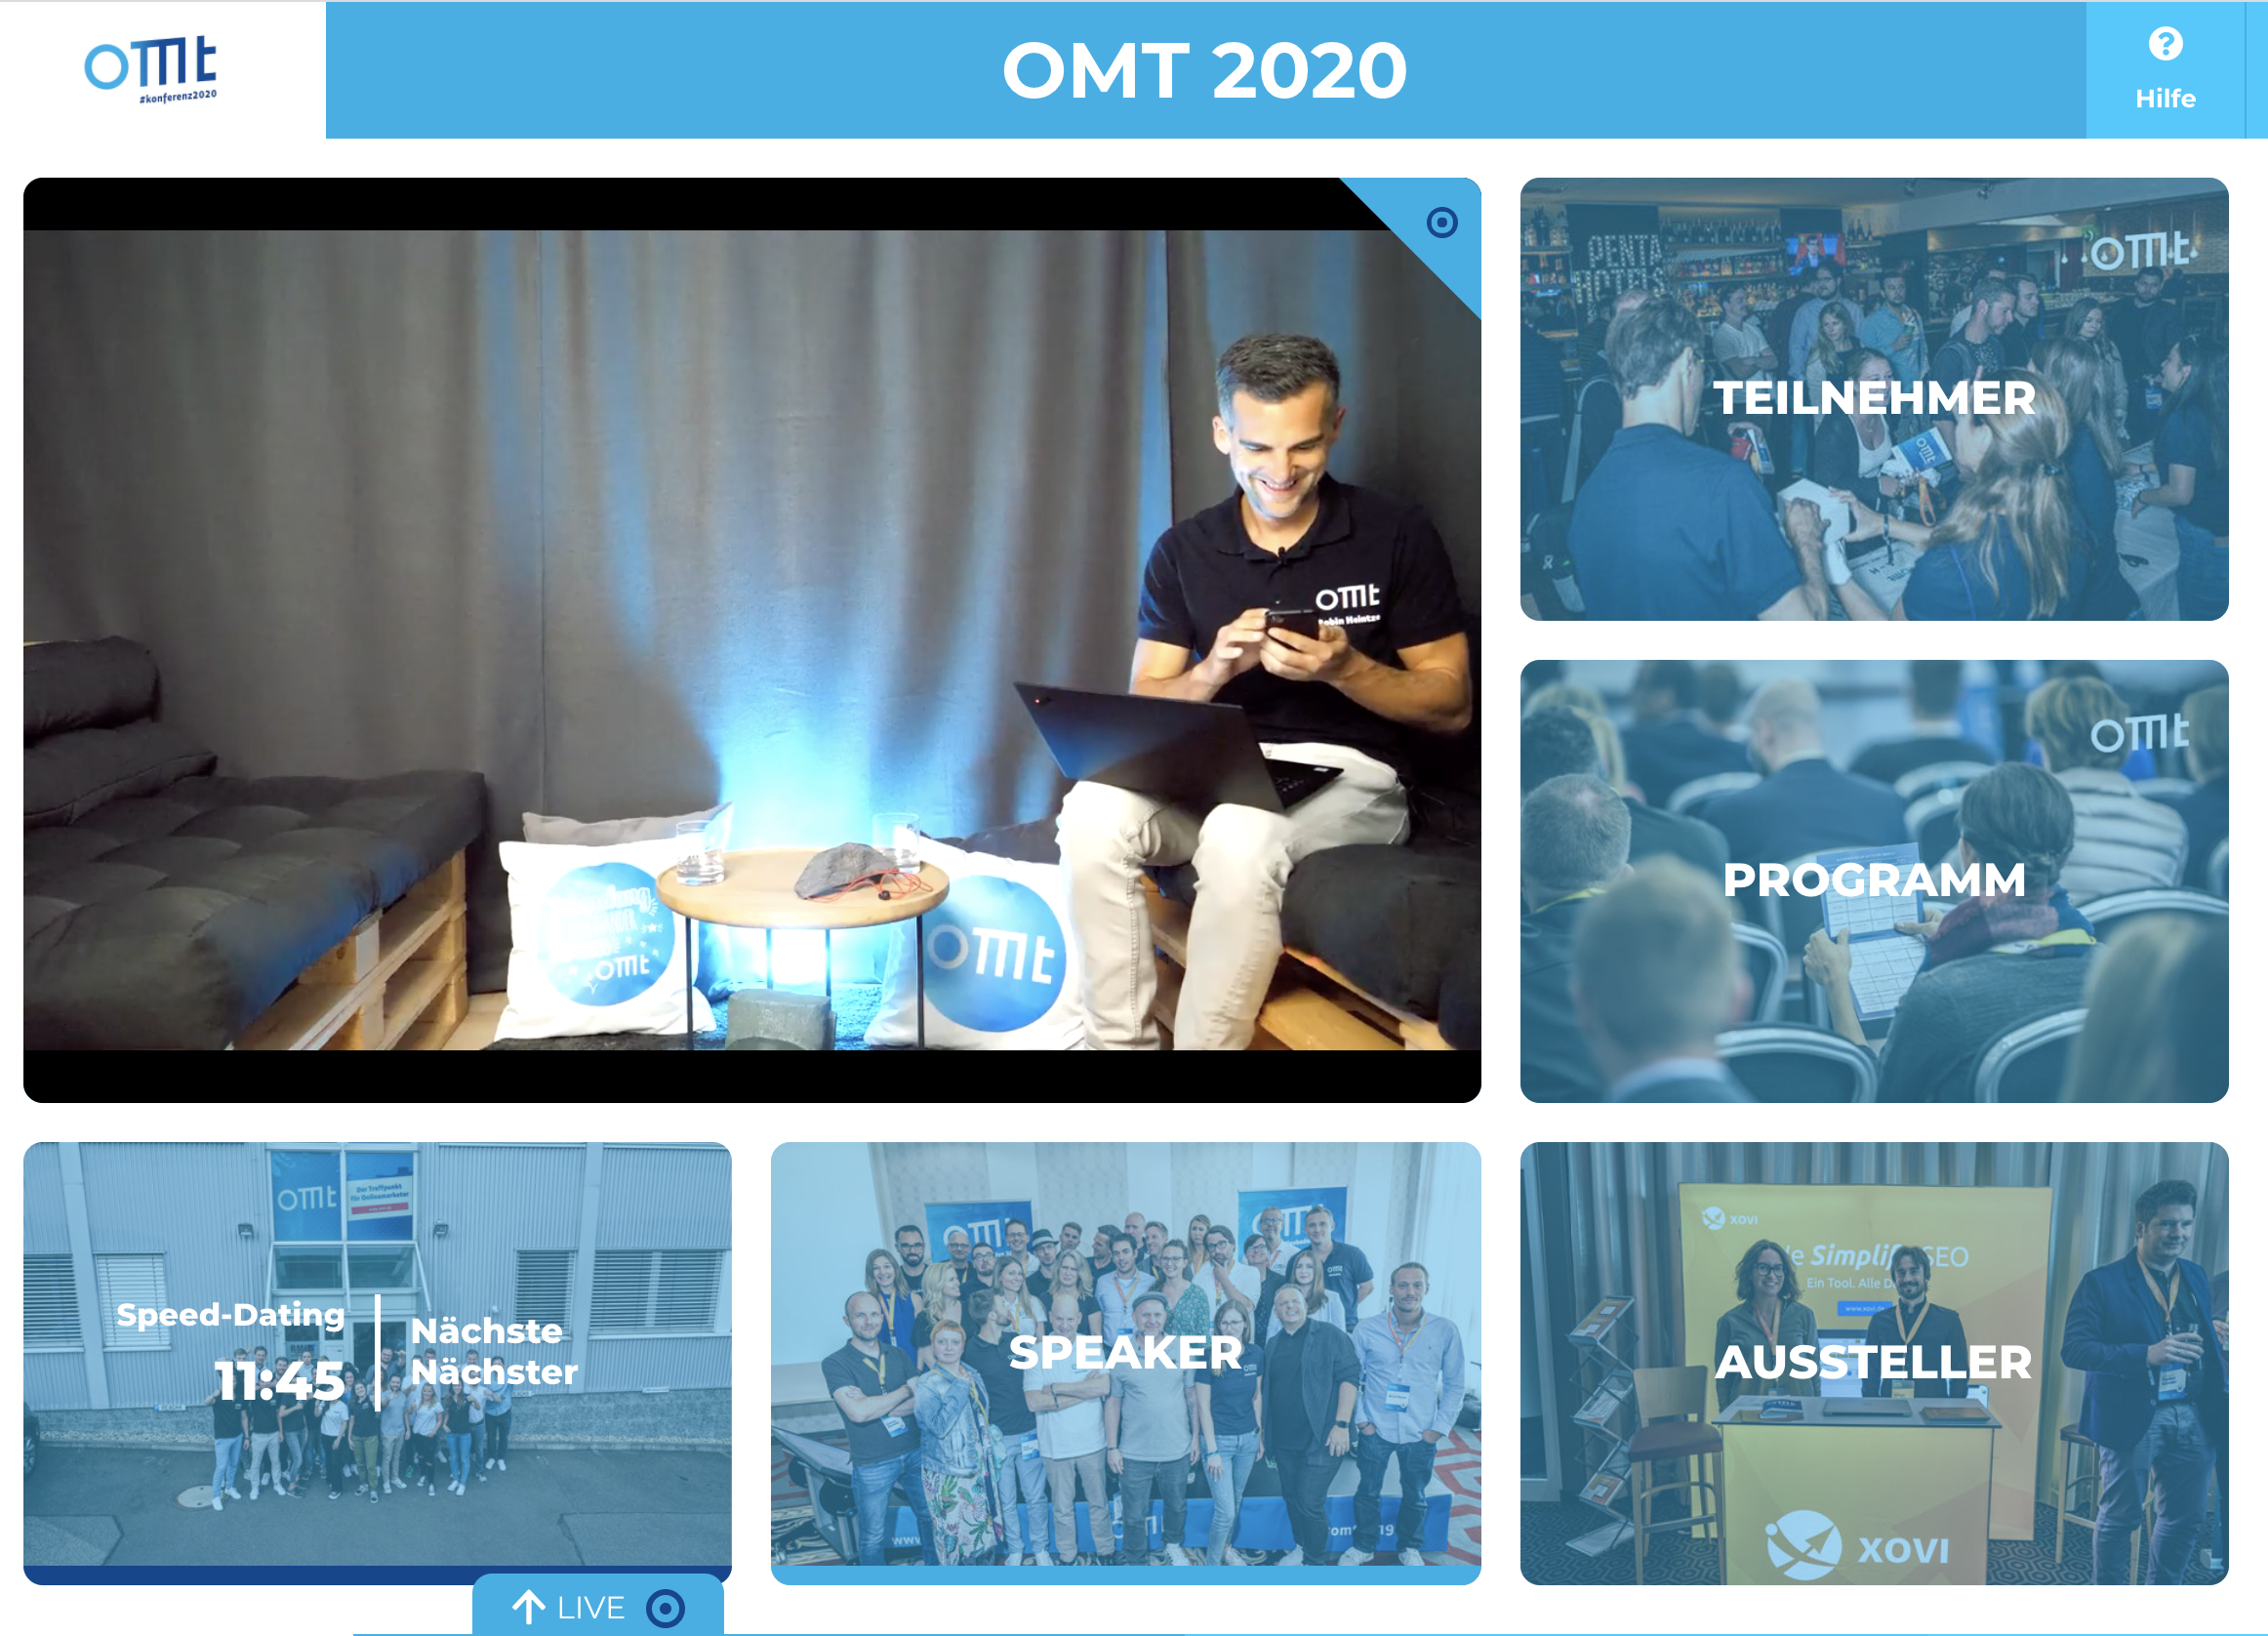 OMT 2020 - Event